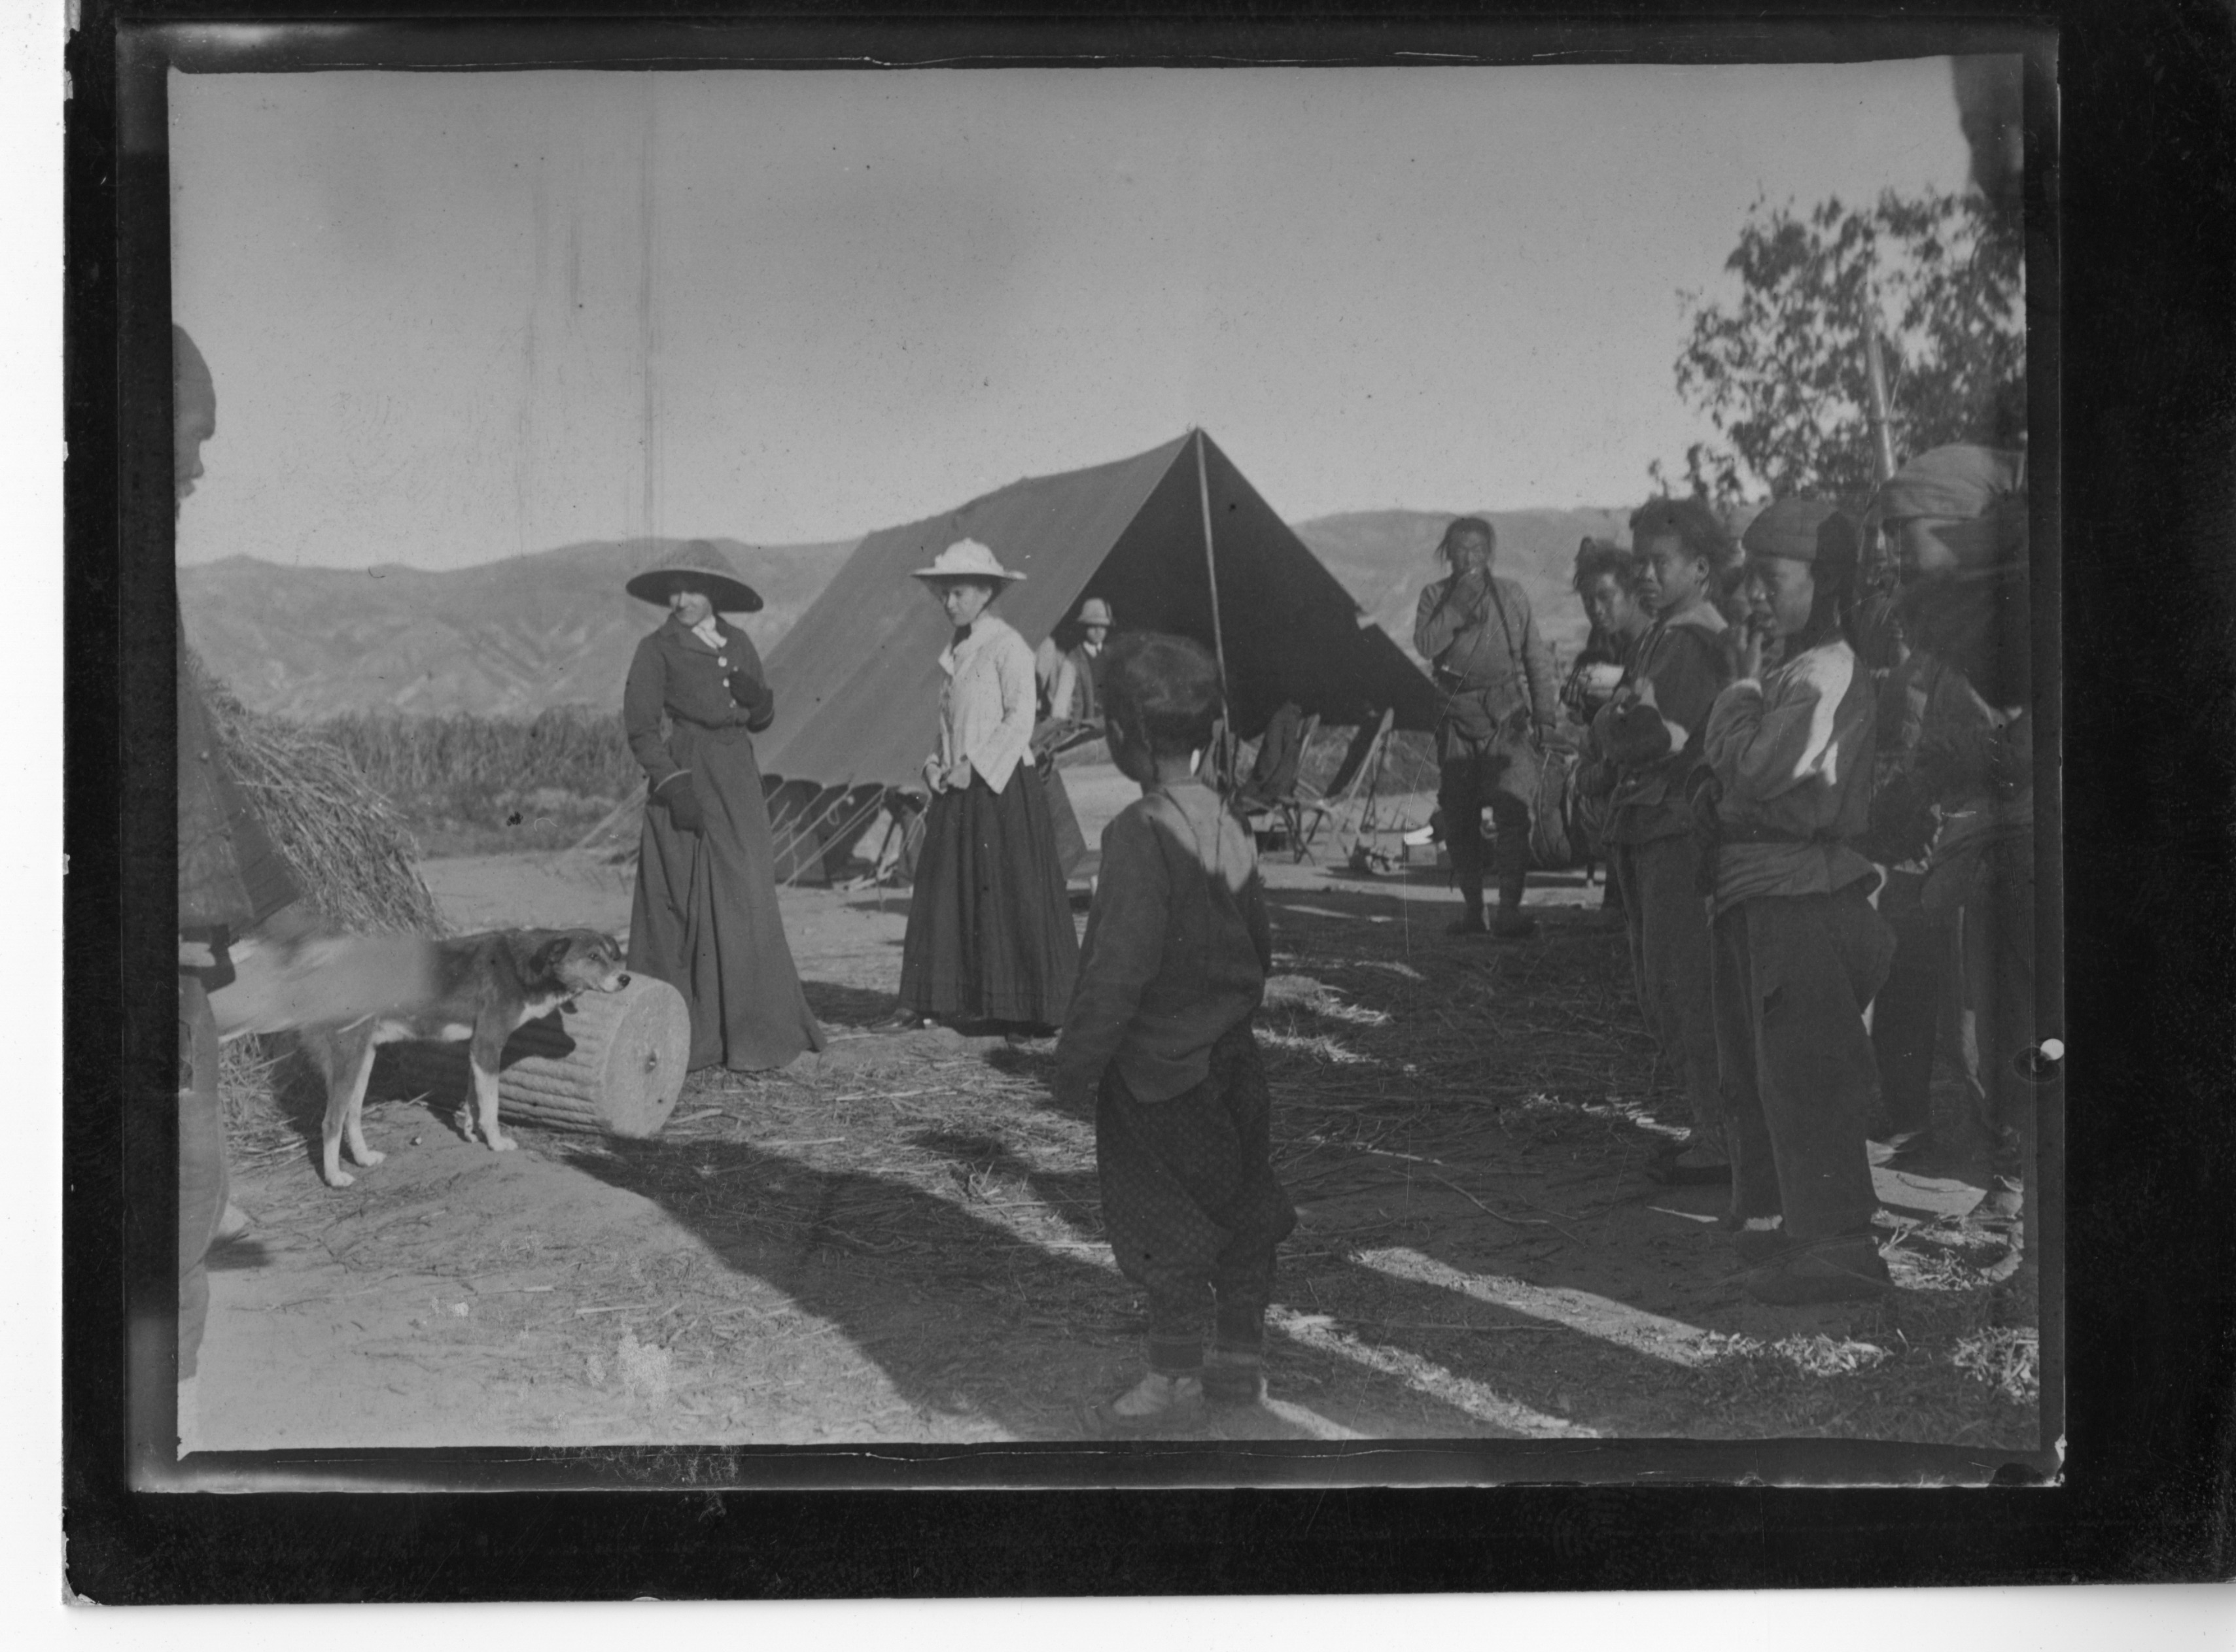 Two women at a campsite. There are children and a dog at the site. The children have darker skin.